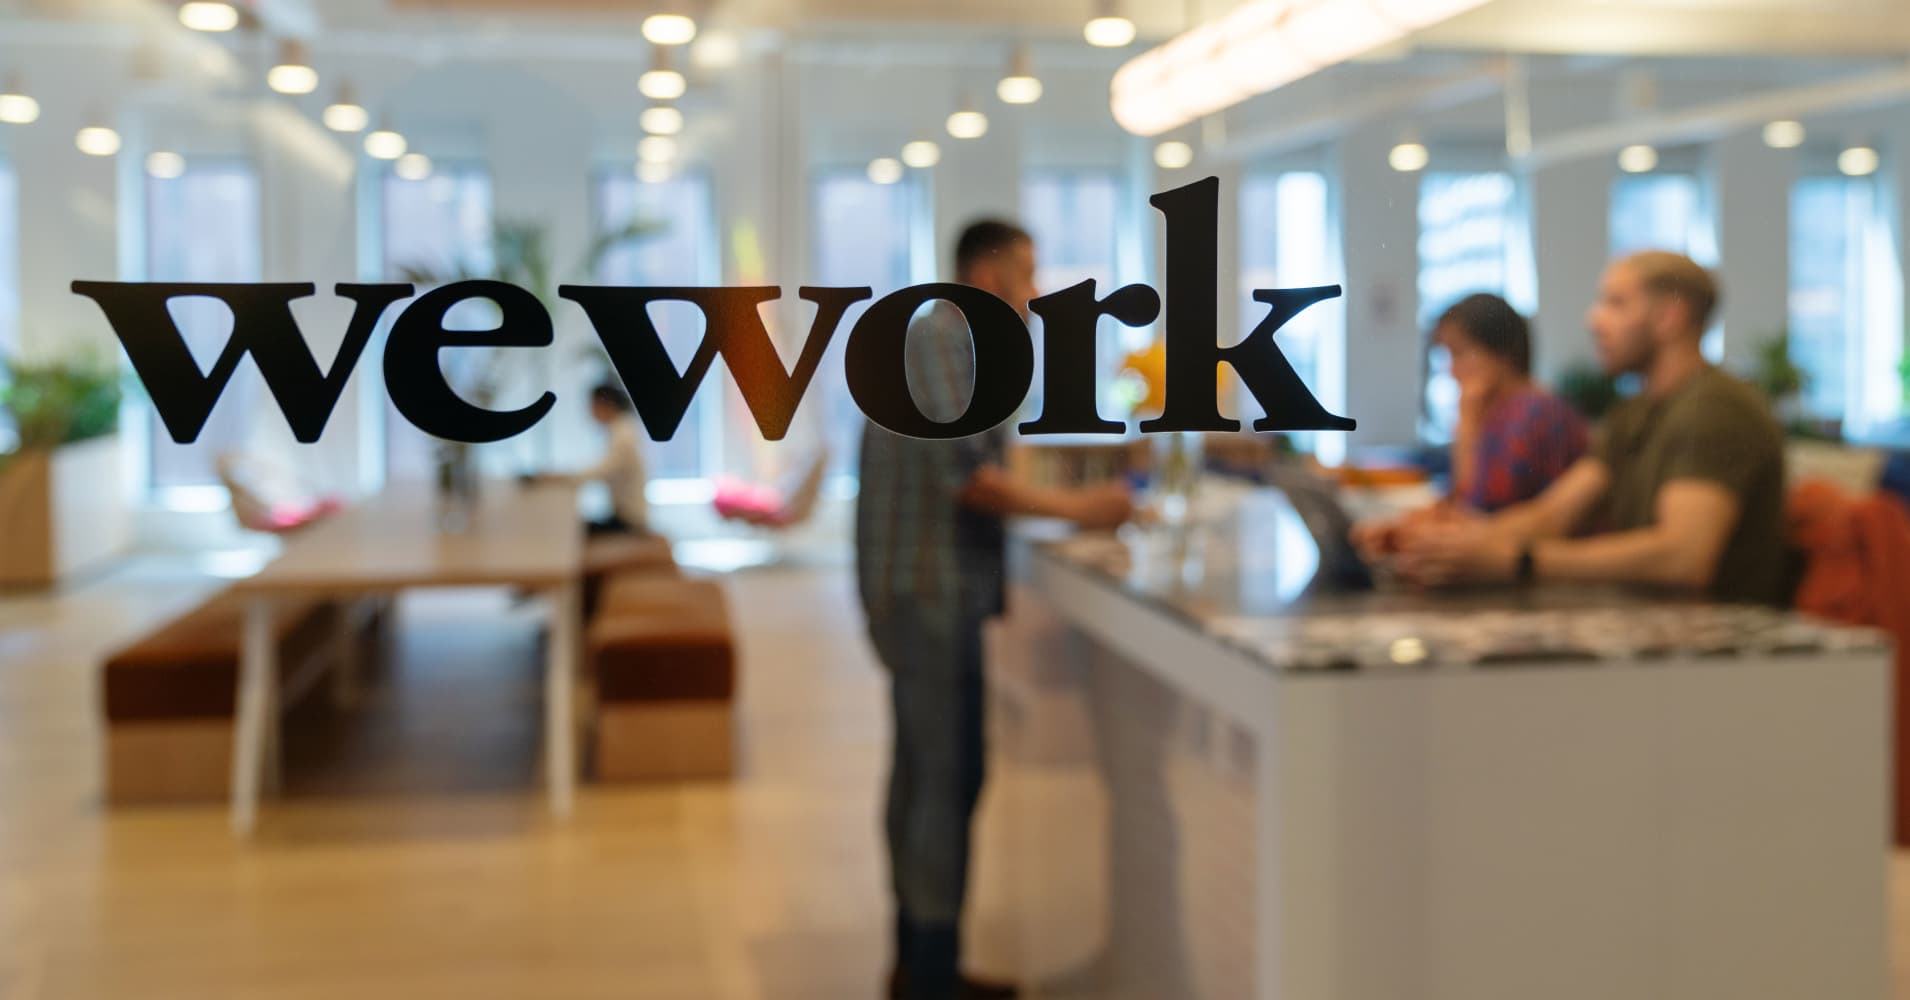 WeWork IPO filing leaves questions unanswered